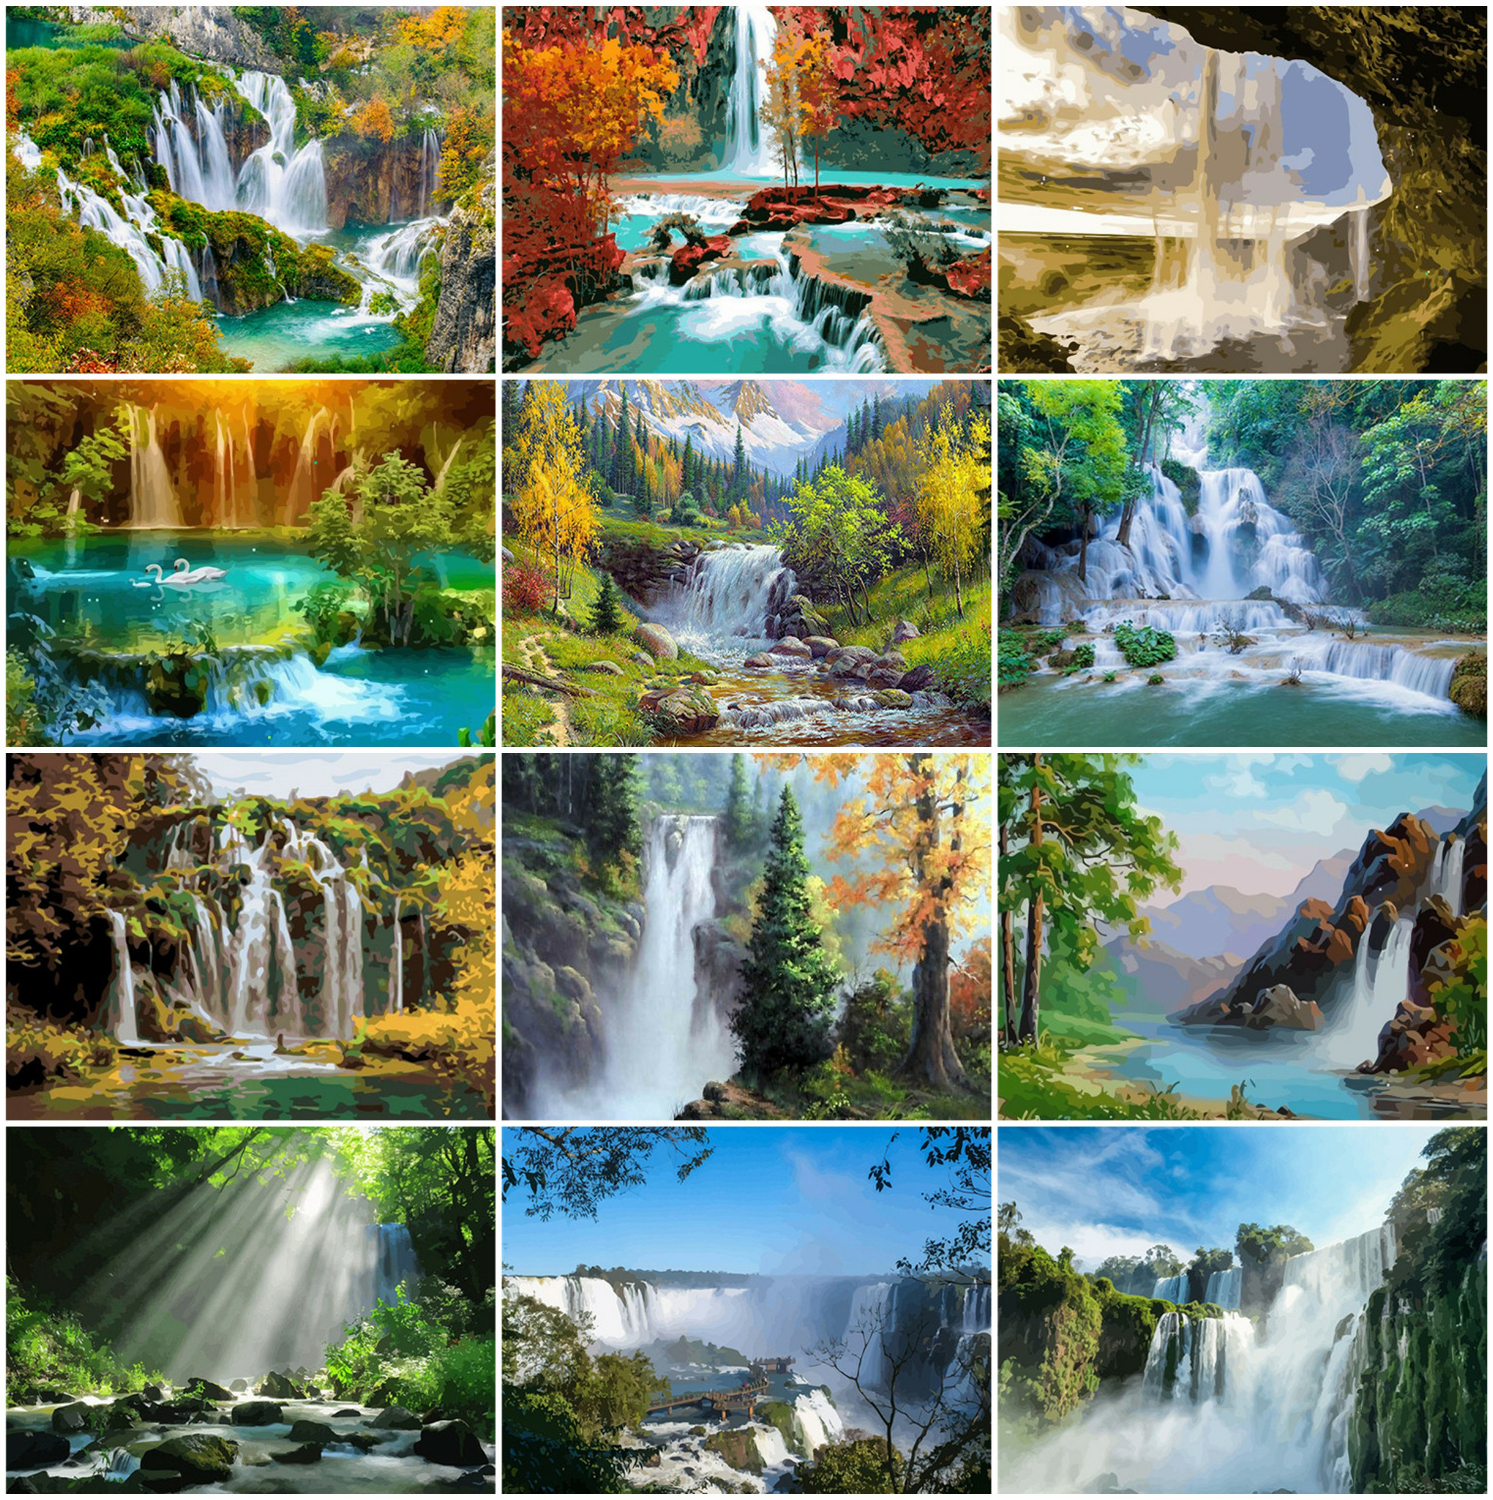 AZQSD Painting By Numbers Waterfall On Canvas DIY 40x50cm Acrylic Paint Coloring By Numbers Natural Landscape Handpainted Gift